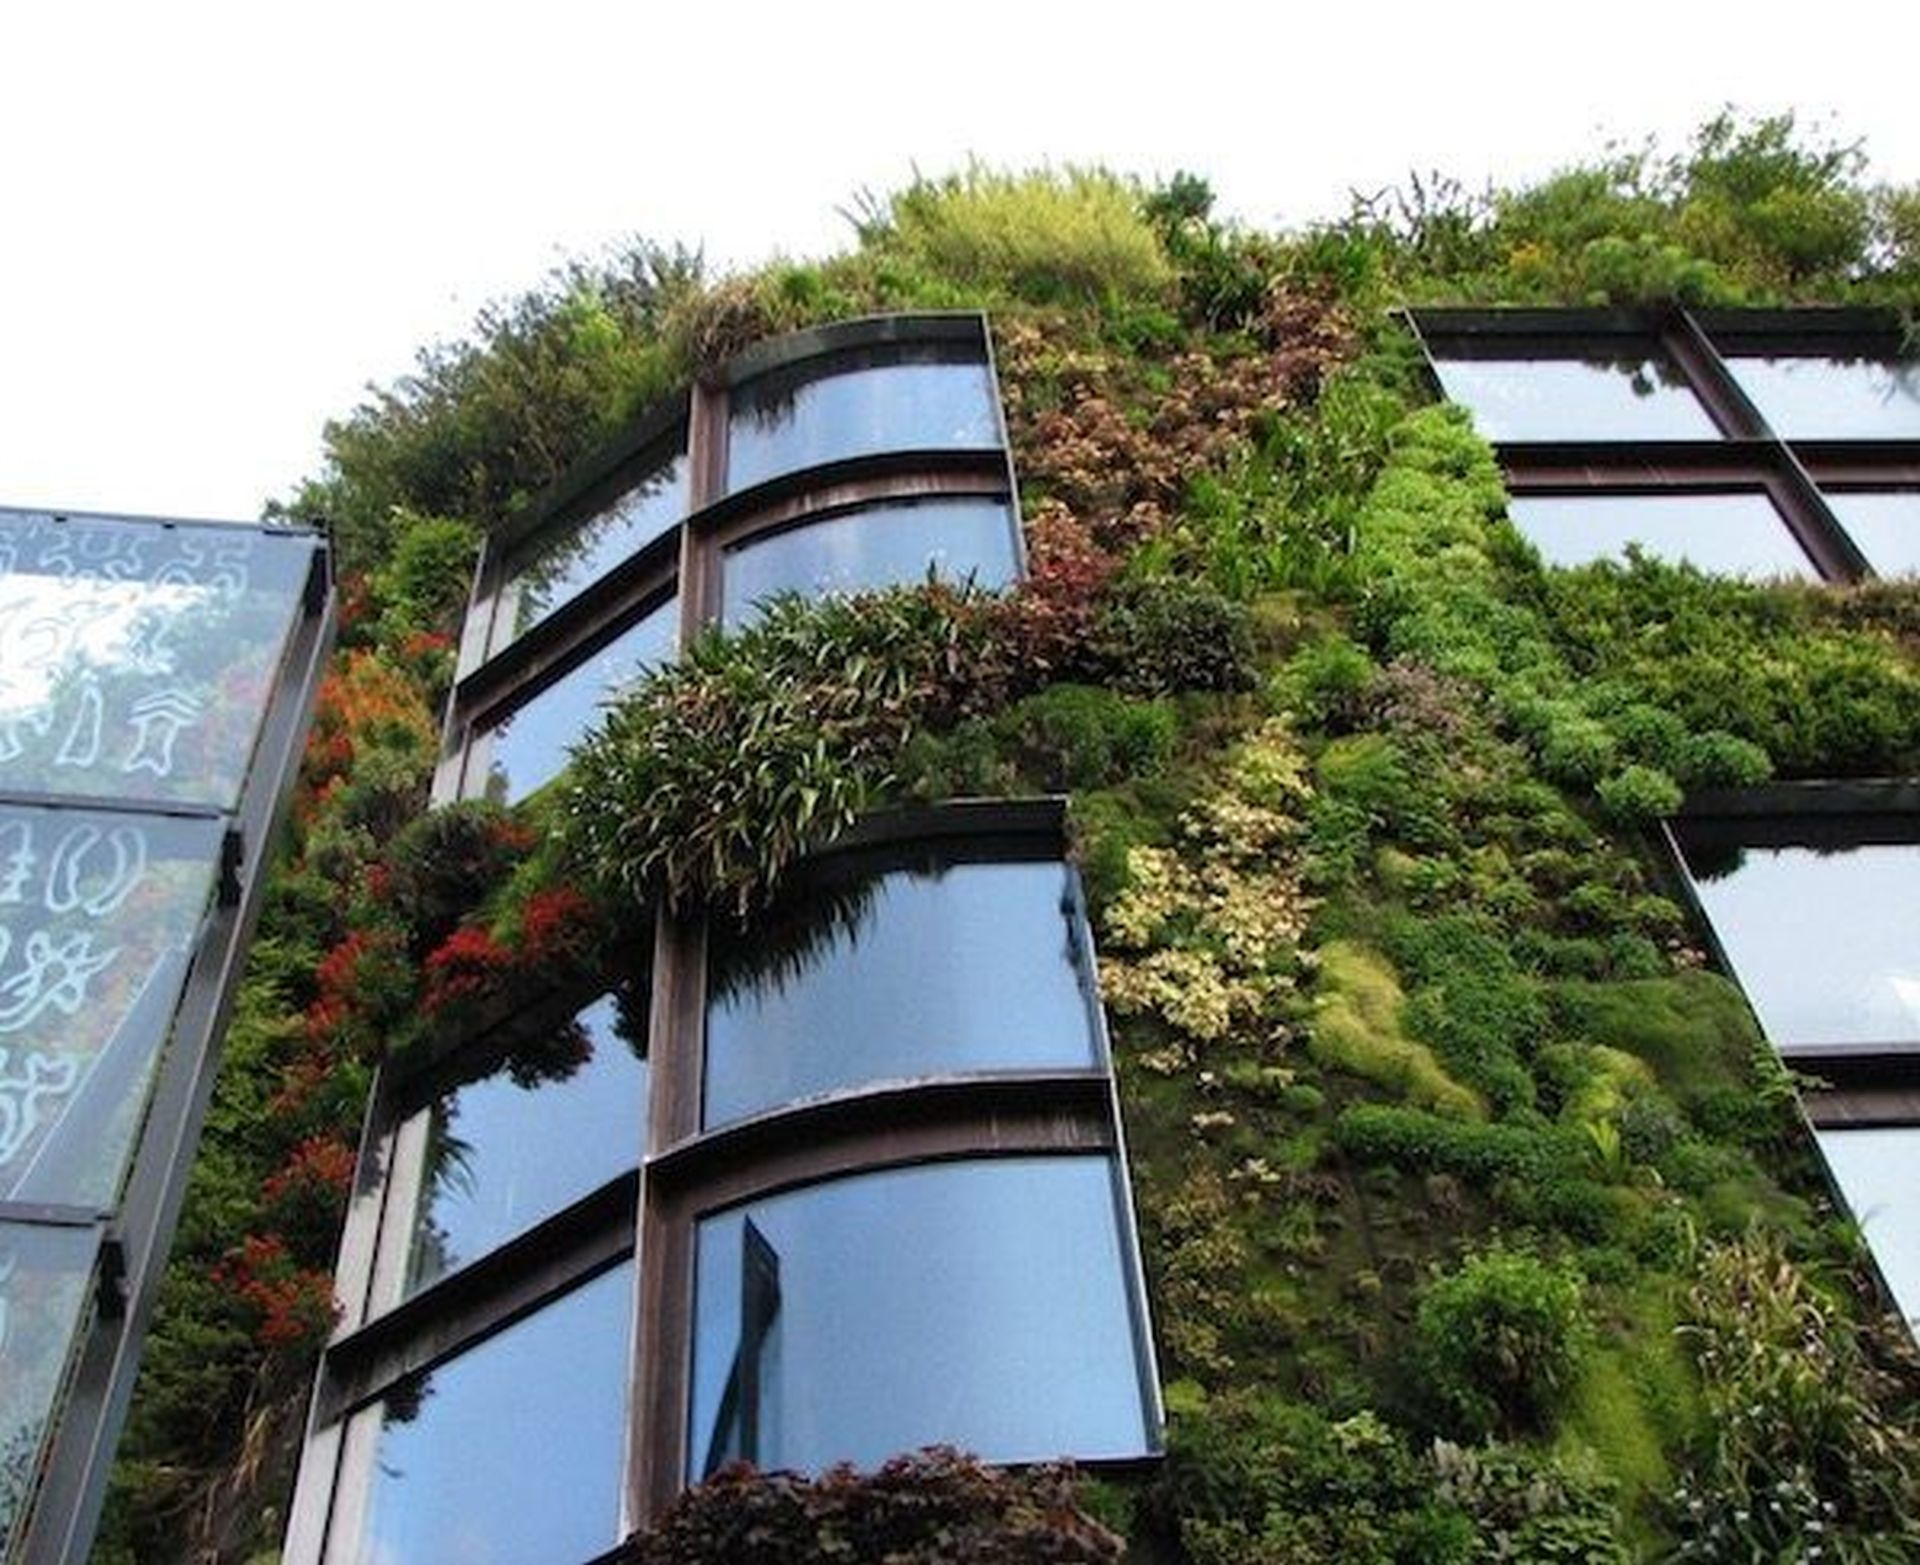 Several windows surrounded by different types of meadows. One of the Vertical gardens we love